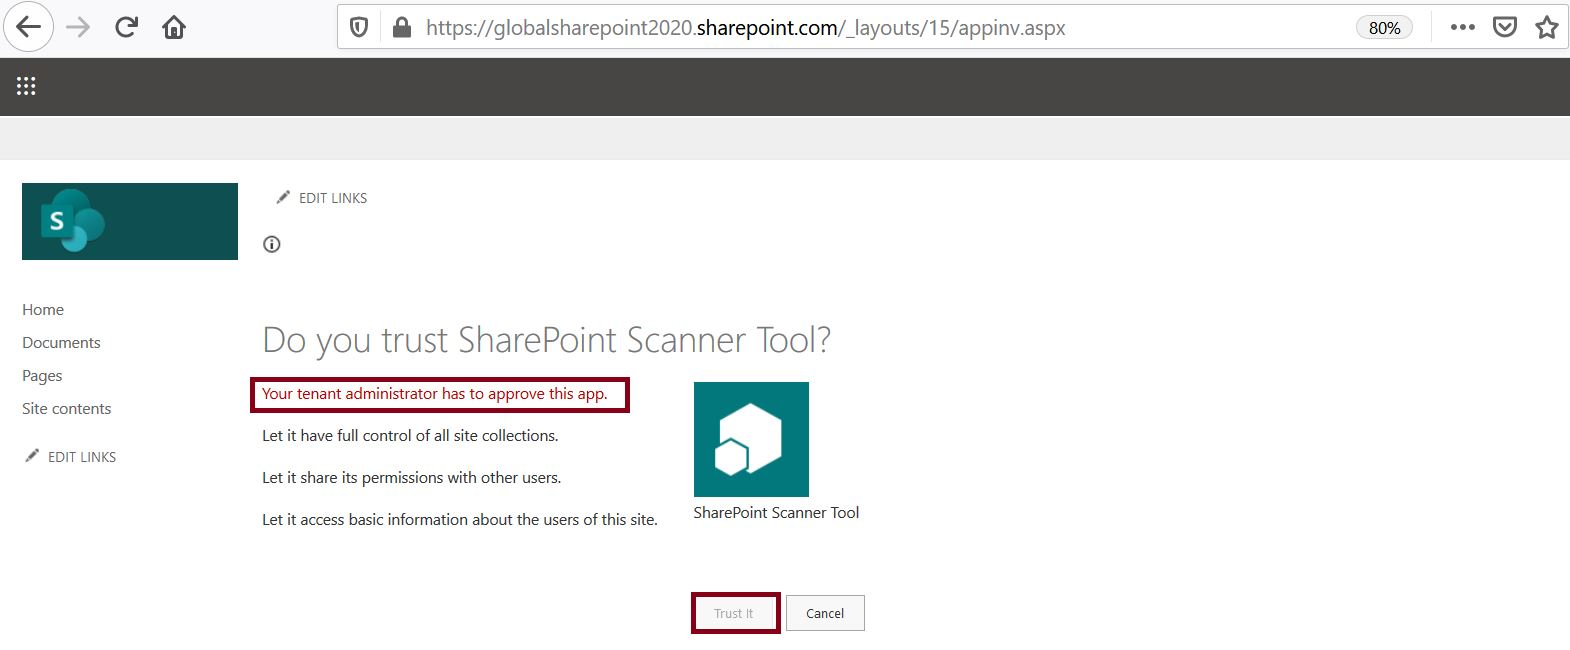 Do you trust SharePoint Scanner Tool - Your tenant administrator has to approve this app